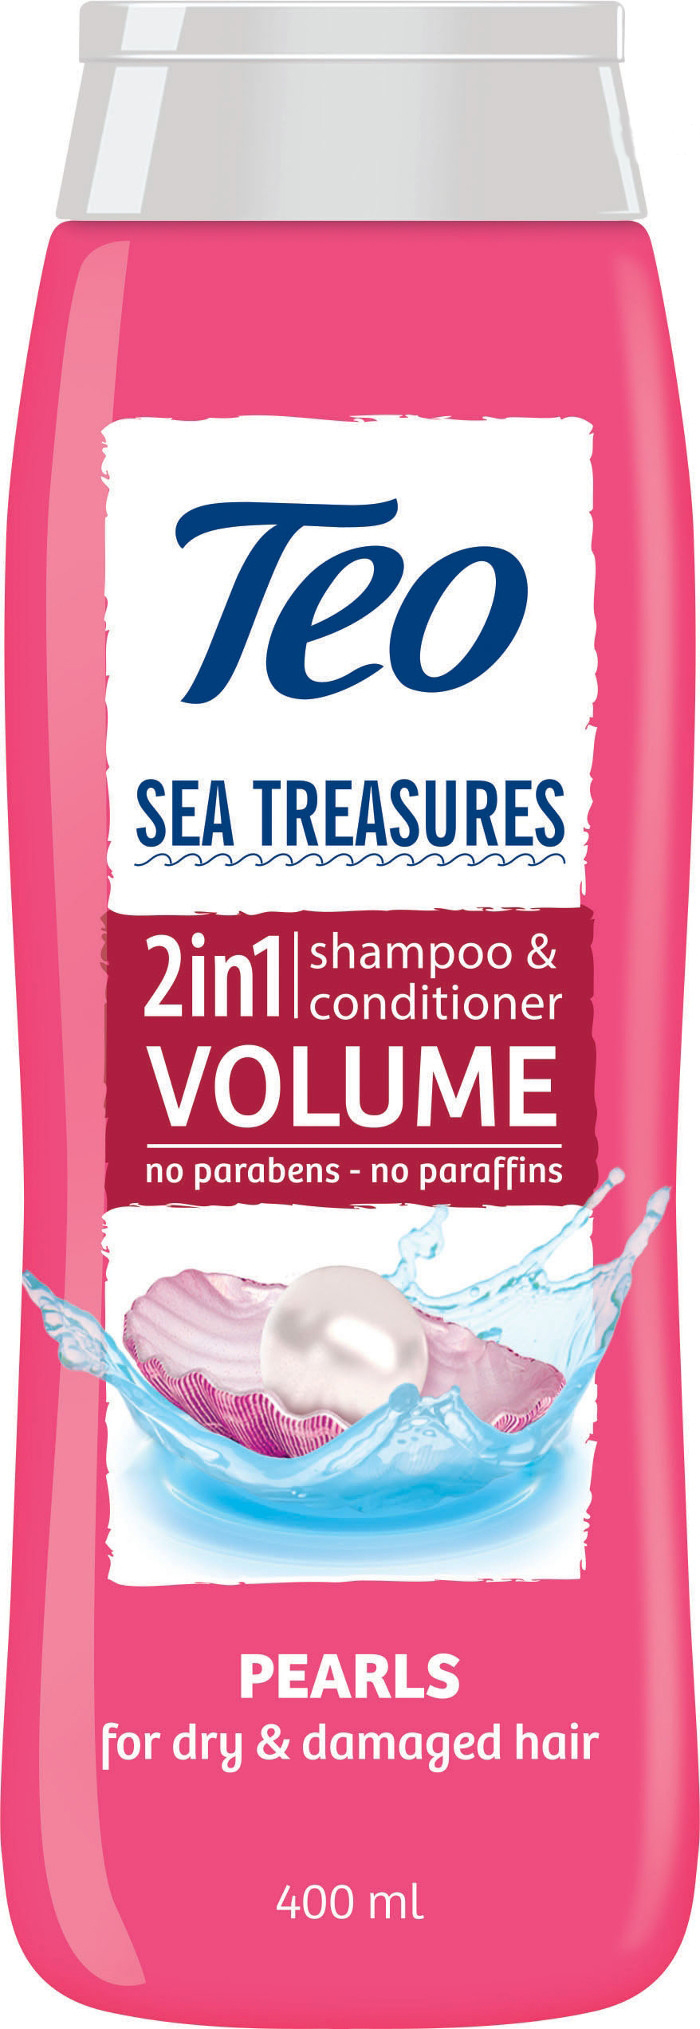 TEO Sea Treasures Pearl shampoo